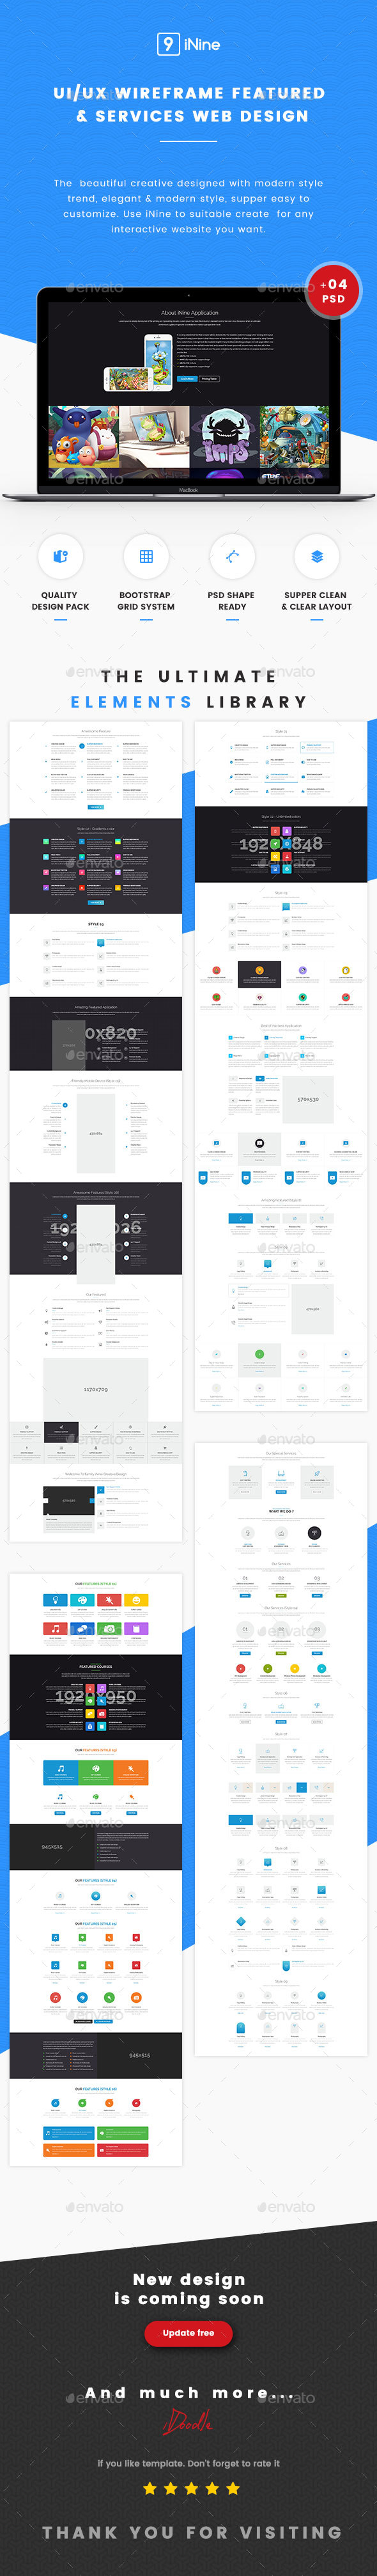 UI Kits Wireframe Featured & Services - 04 PSD - User Interfaces Web Elements